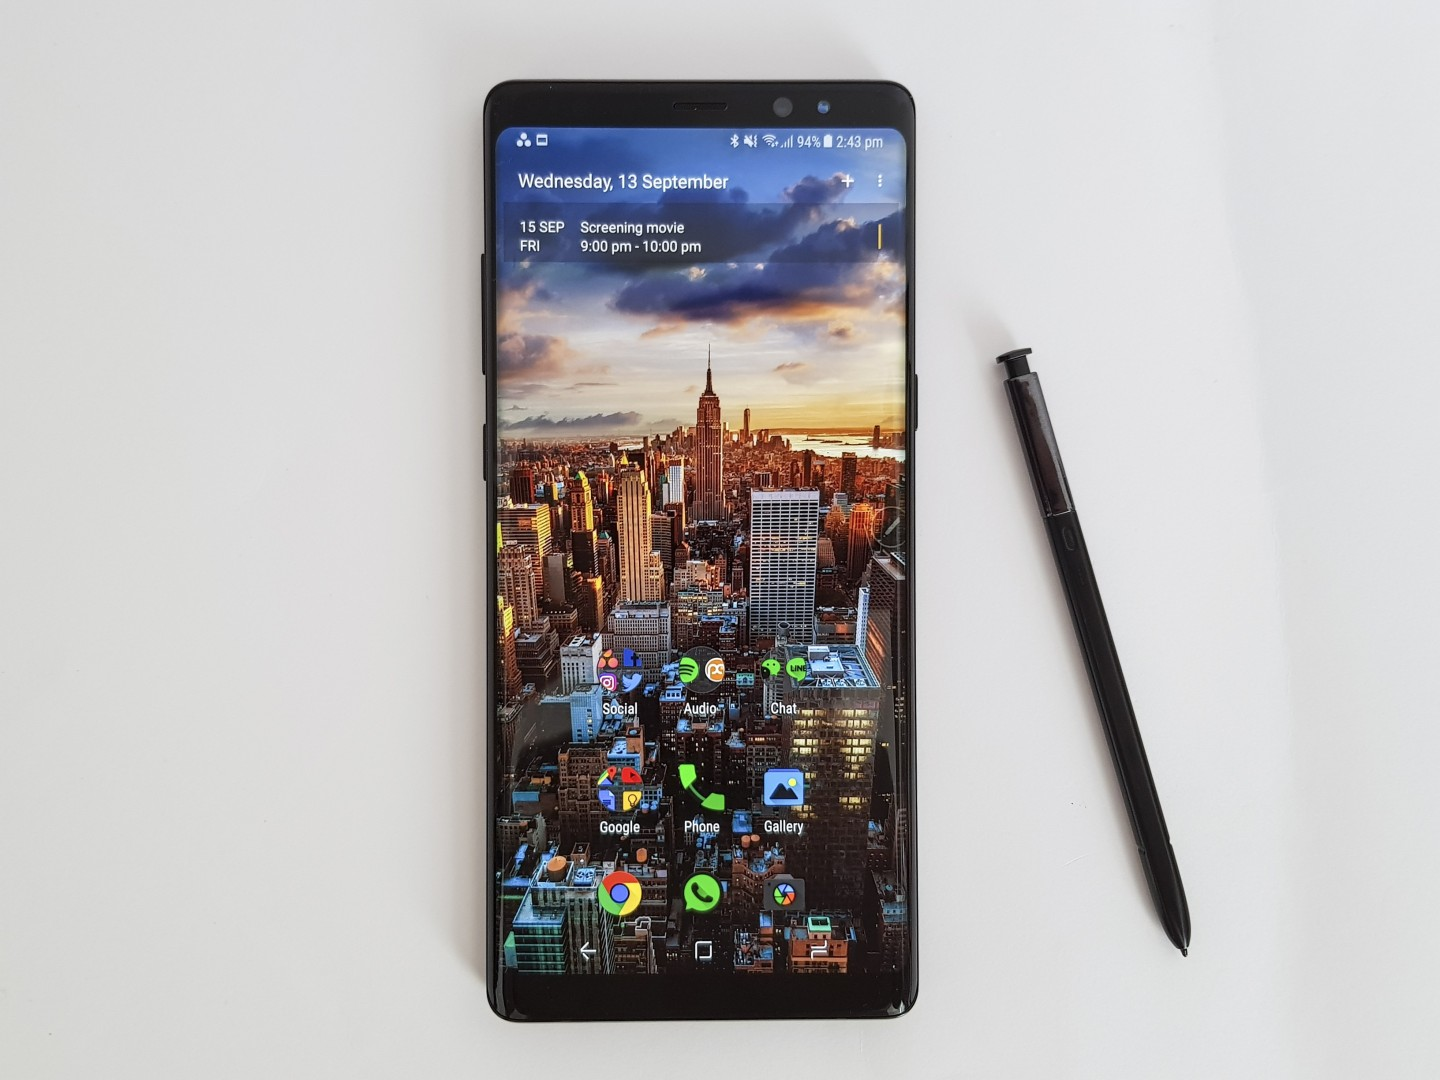 Samsung Galaxy Note 8 full review: top-of-the-line specs and great